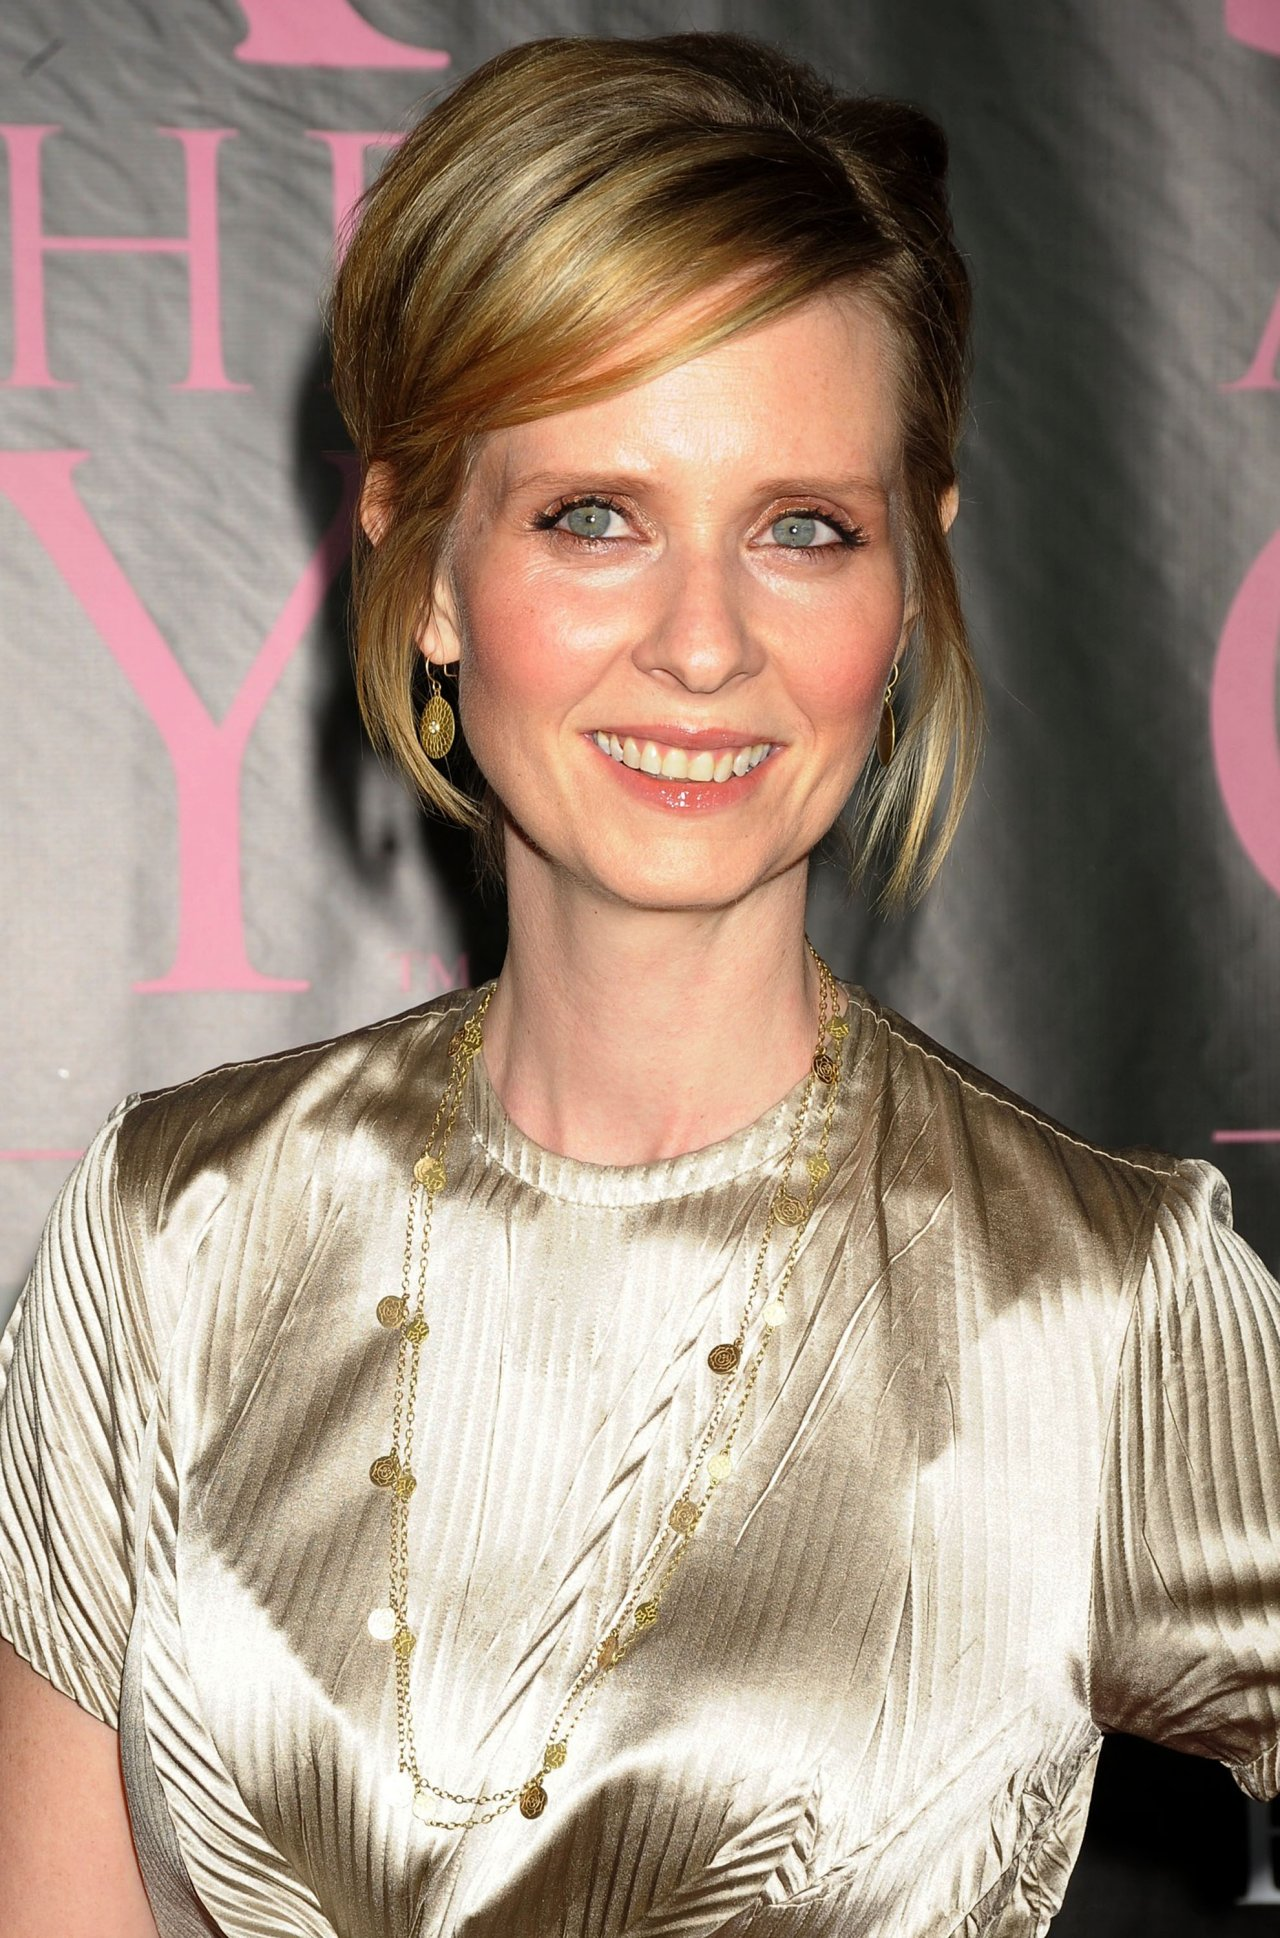 cynthia nixon wallpaper - photo #9